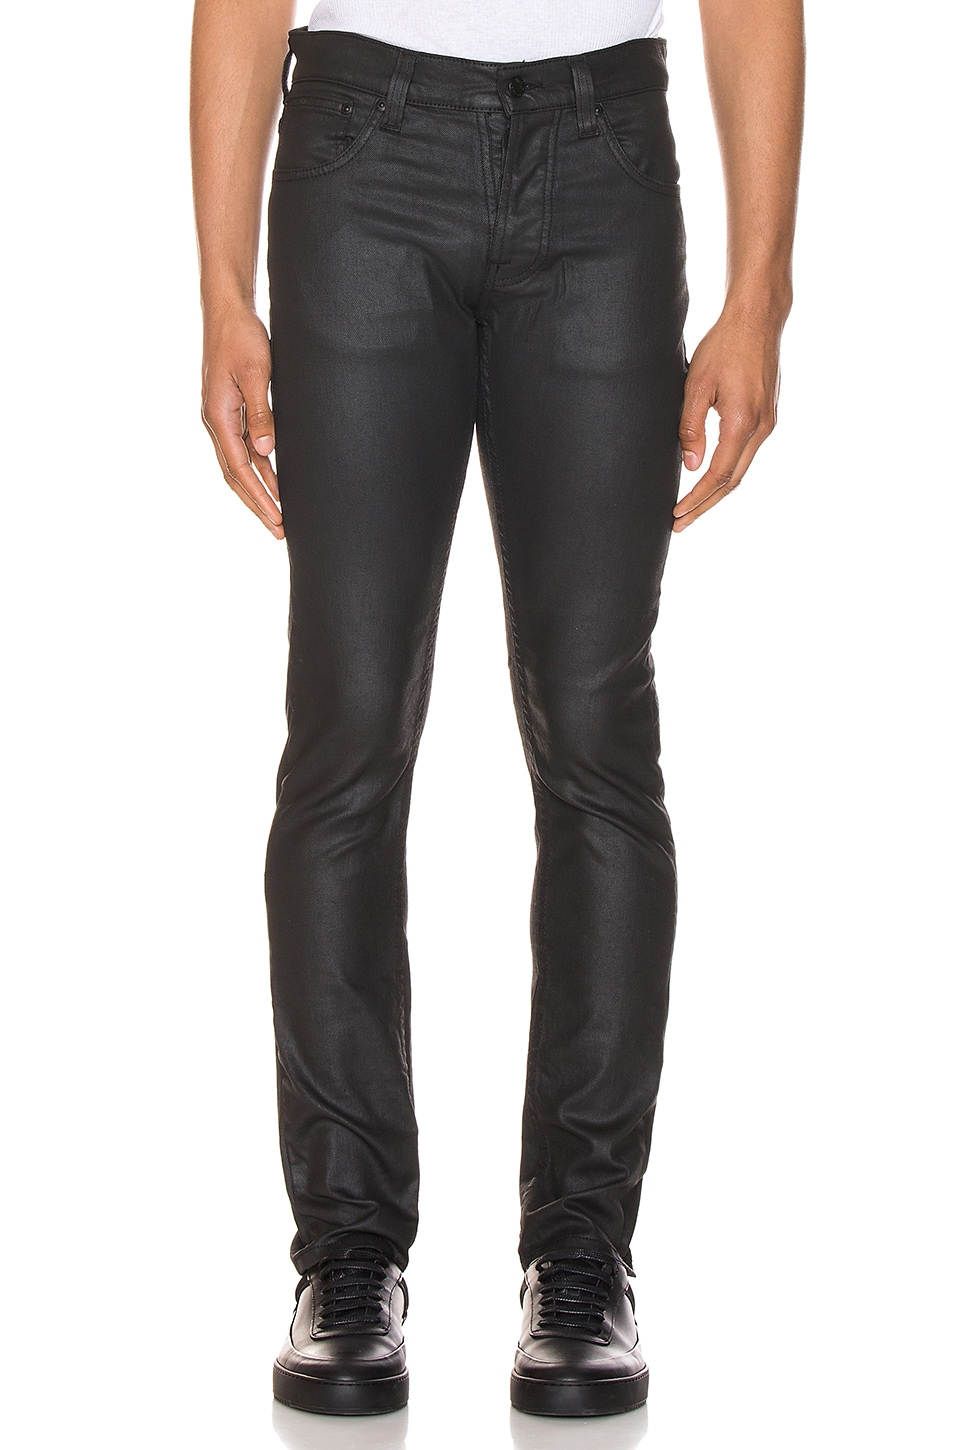 Nudie Jeans Grim Tim in Dry Black Mind